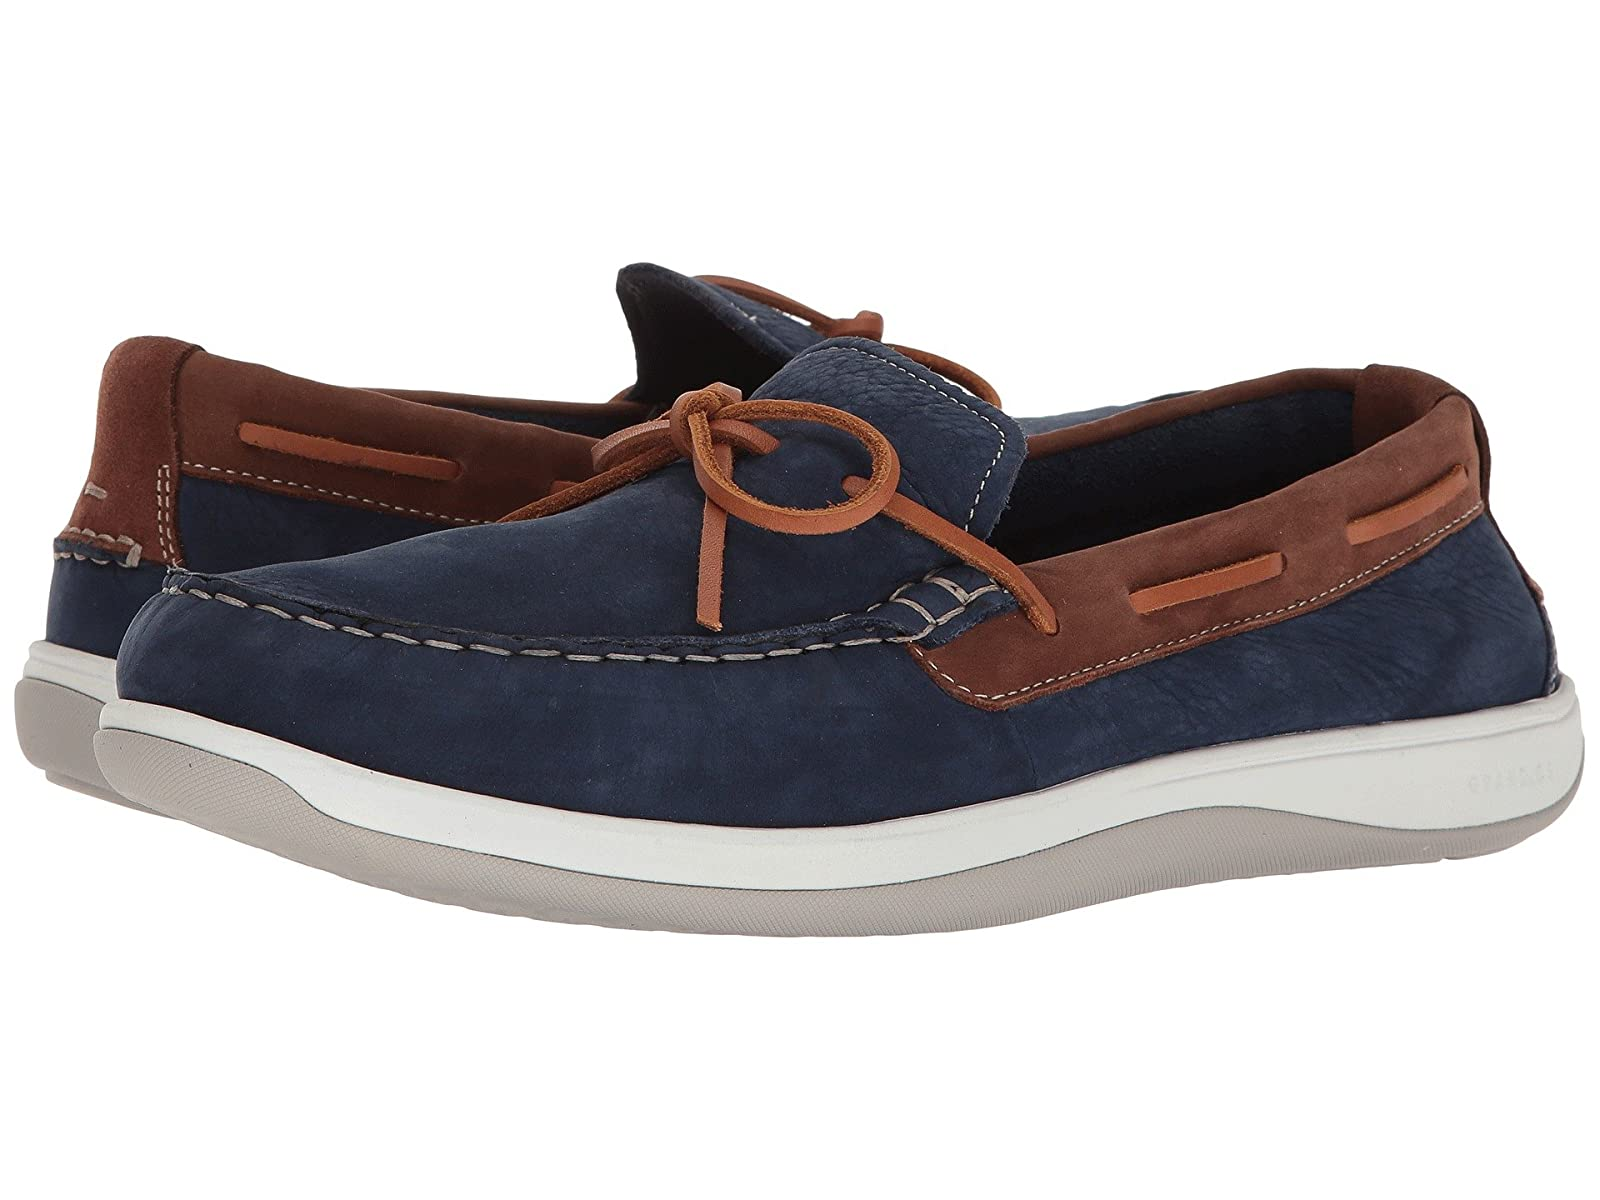 Cole Haan Boothbay Camp MoccasinCheap and distinctive eye-catching shoes